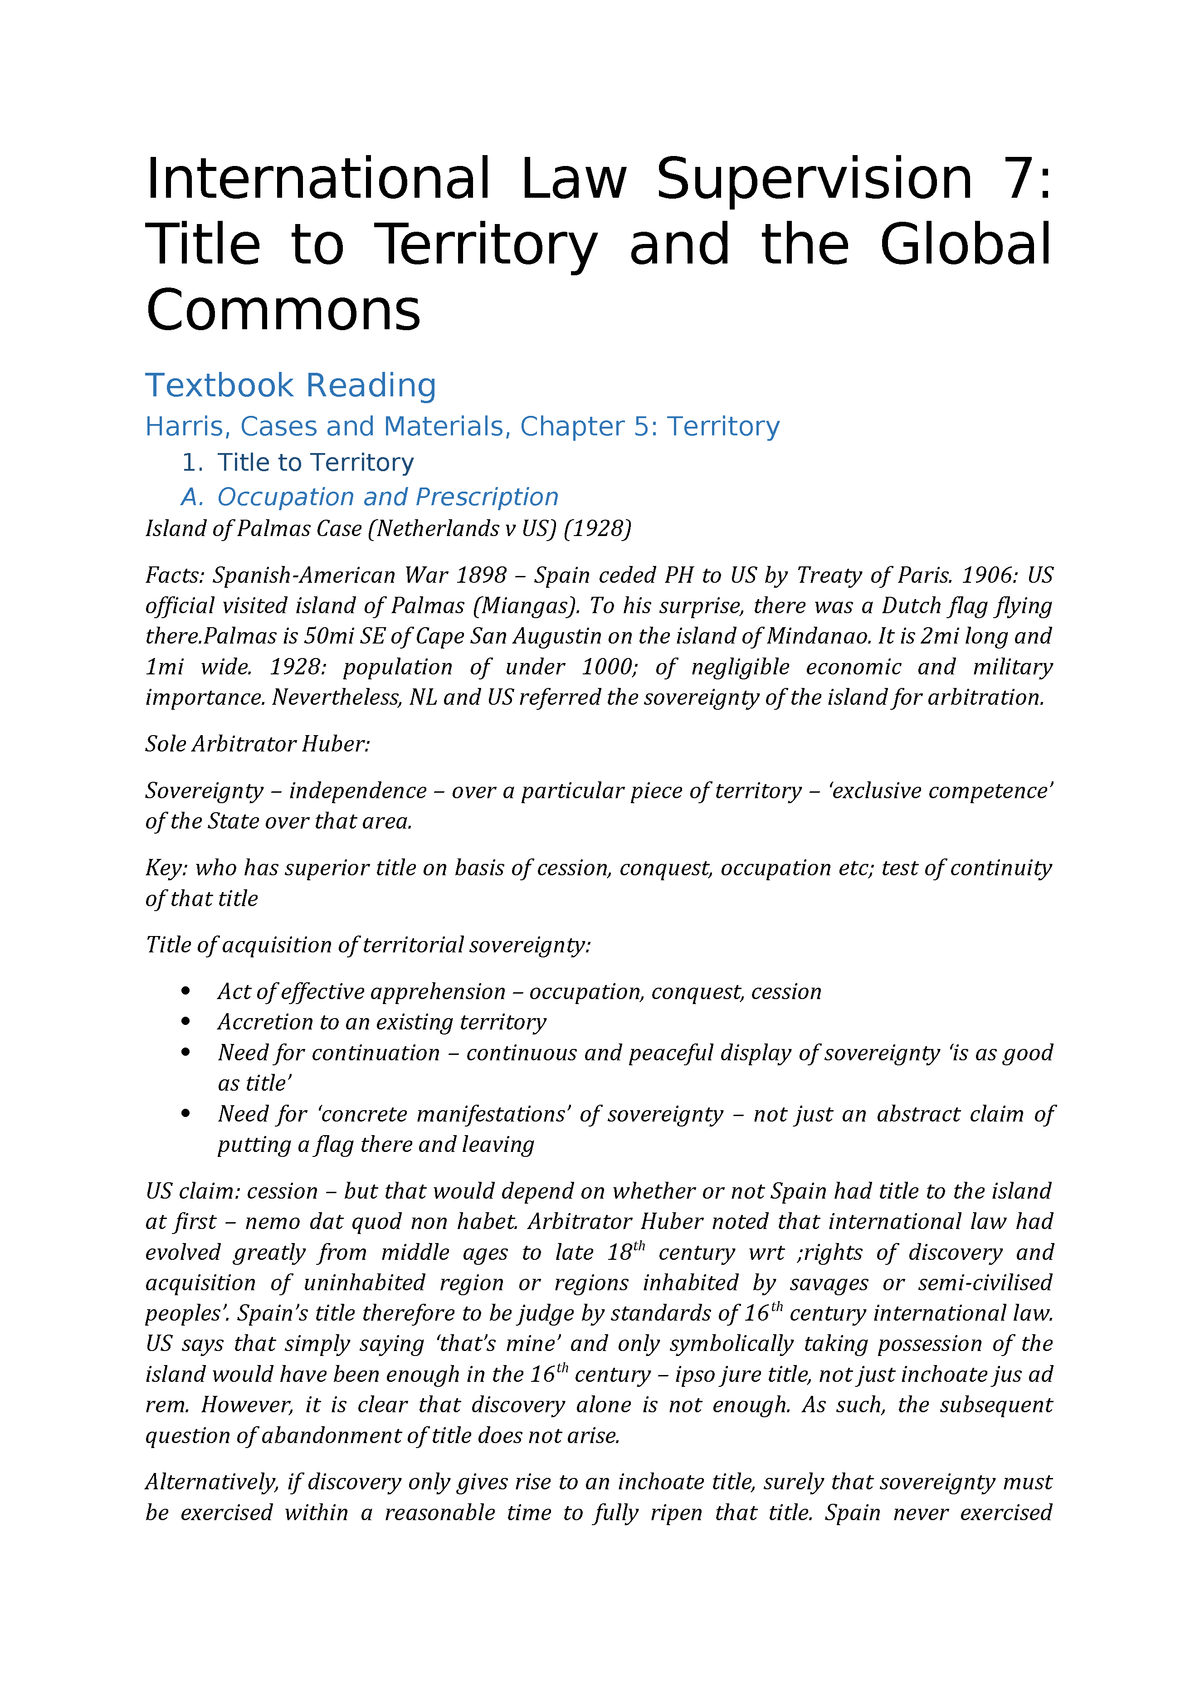 International Law Supervision 7 Notes Territory Commons